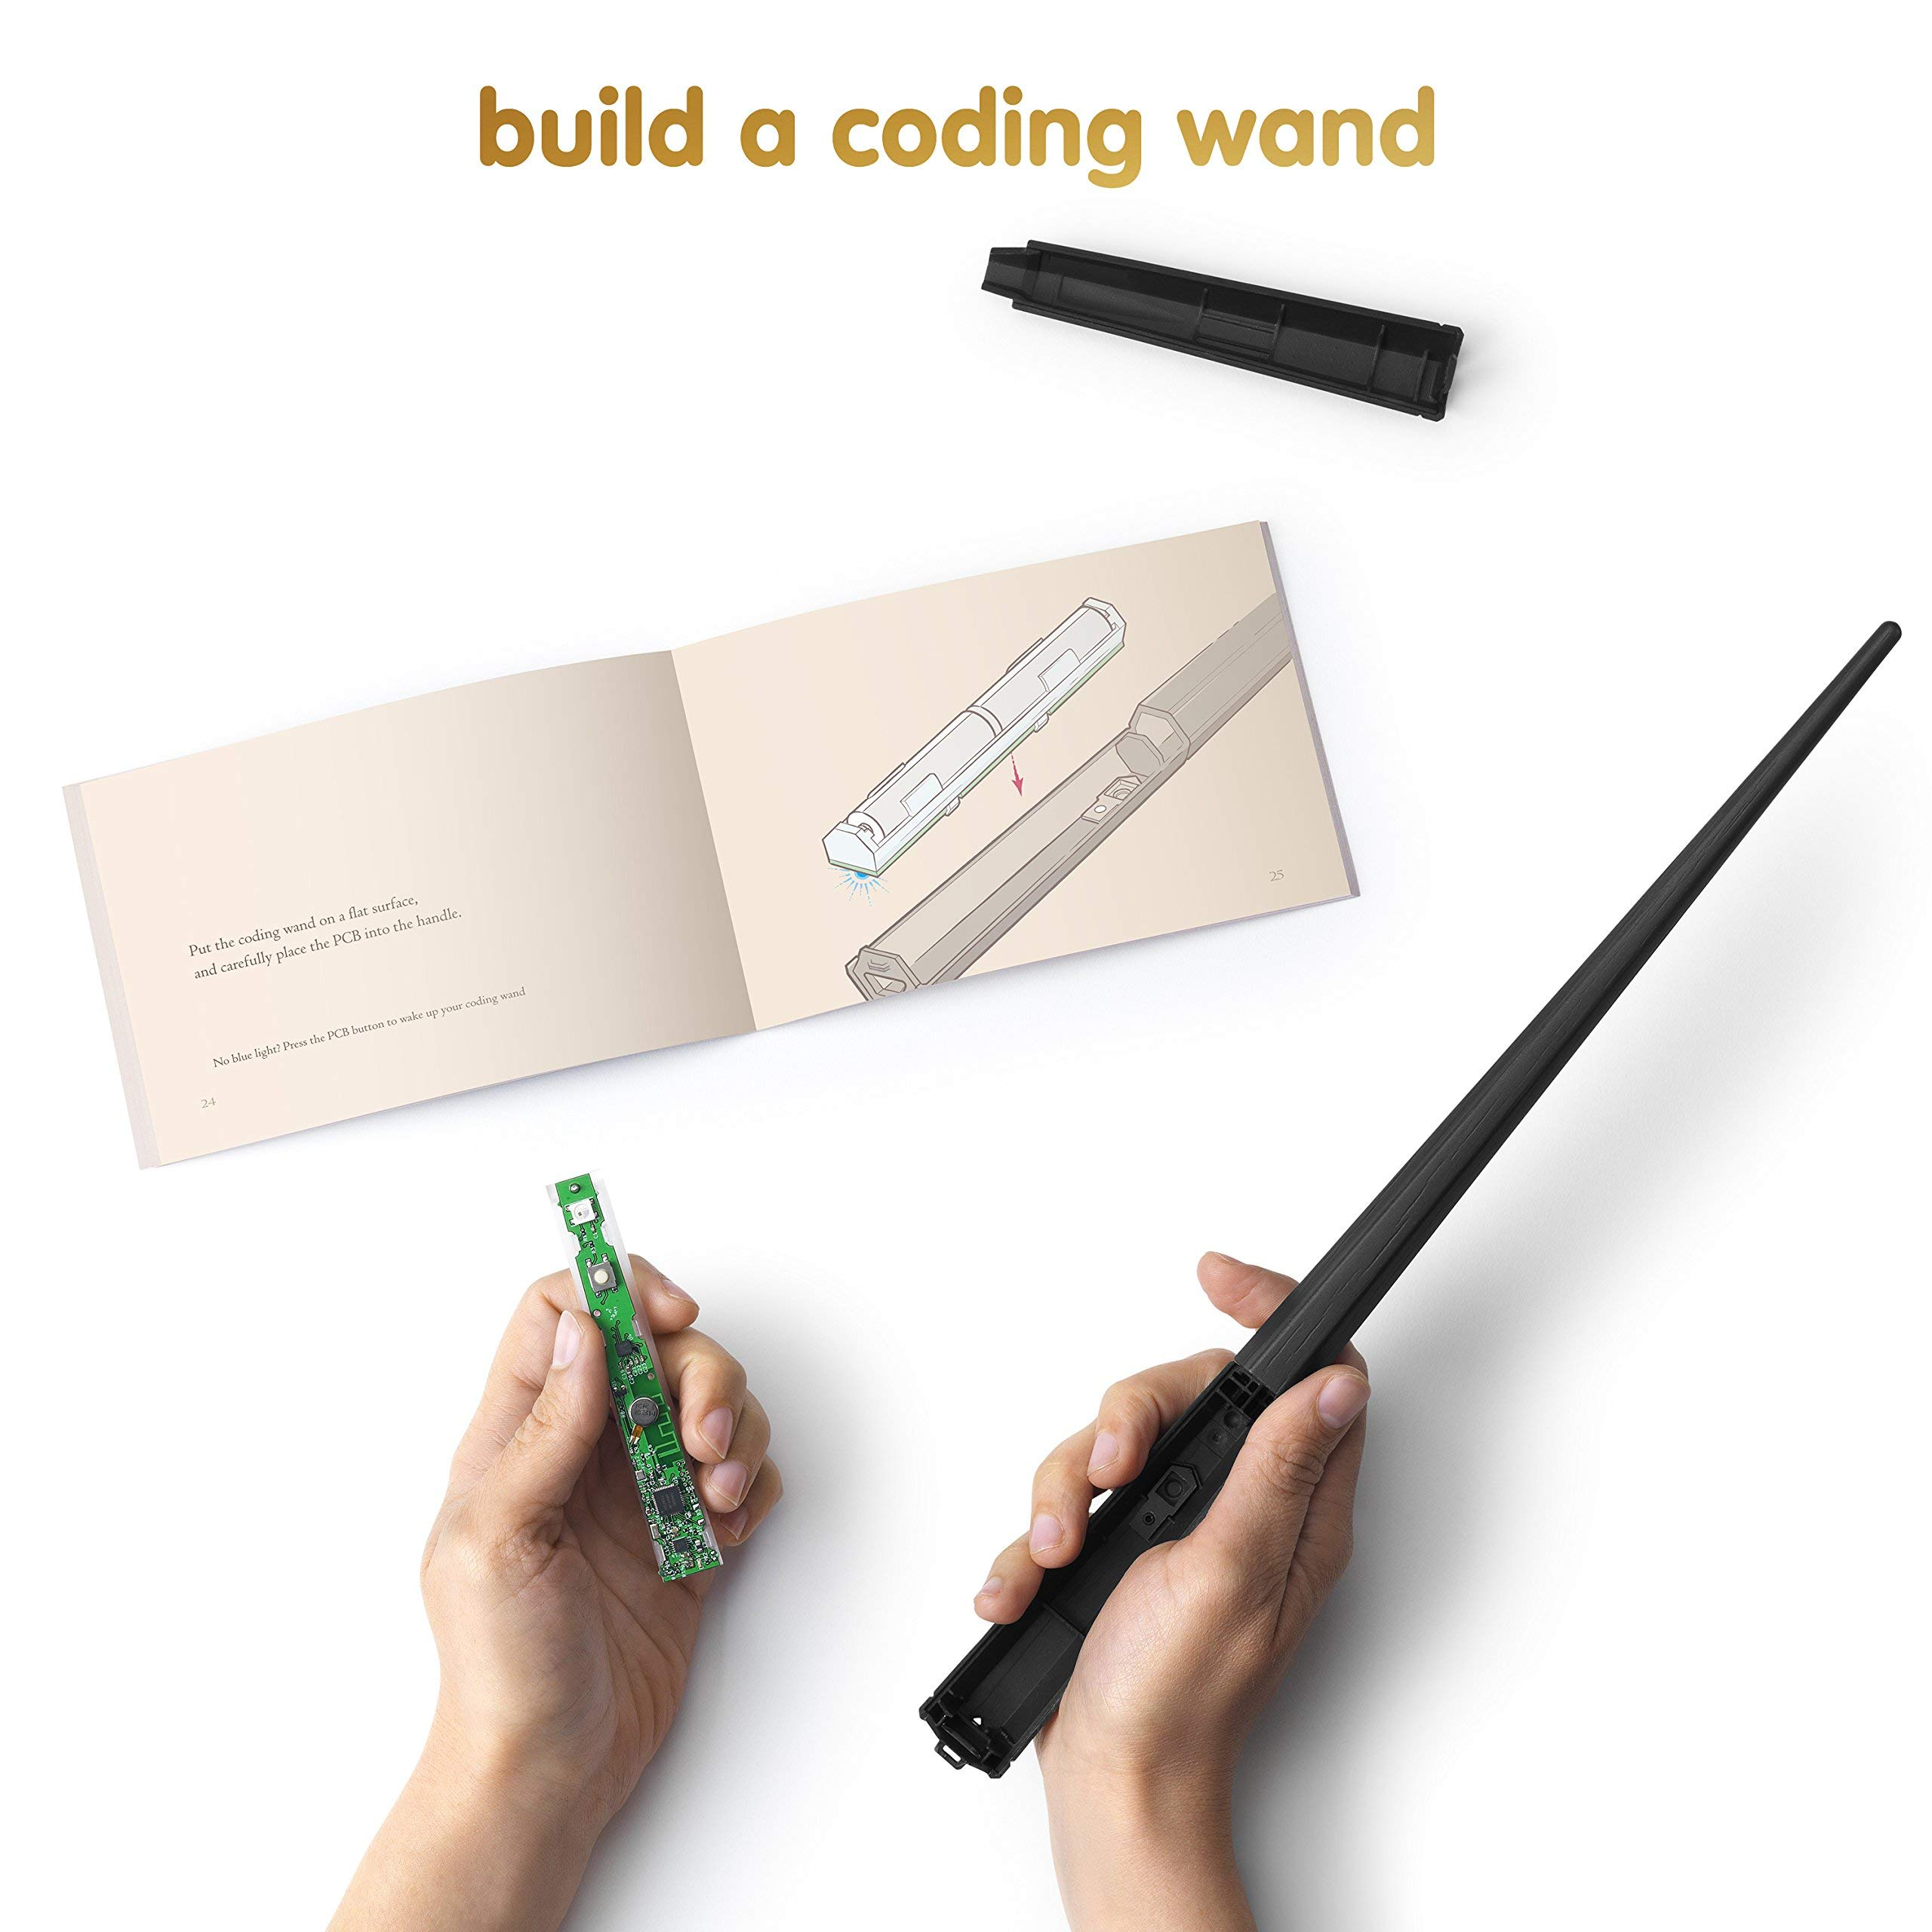 Kano Harry Potter Coding Kit - Build a Wand. Learn To Code. Make Magic. (Renewed) by Kano (Image #3)